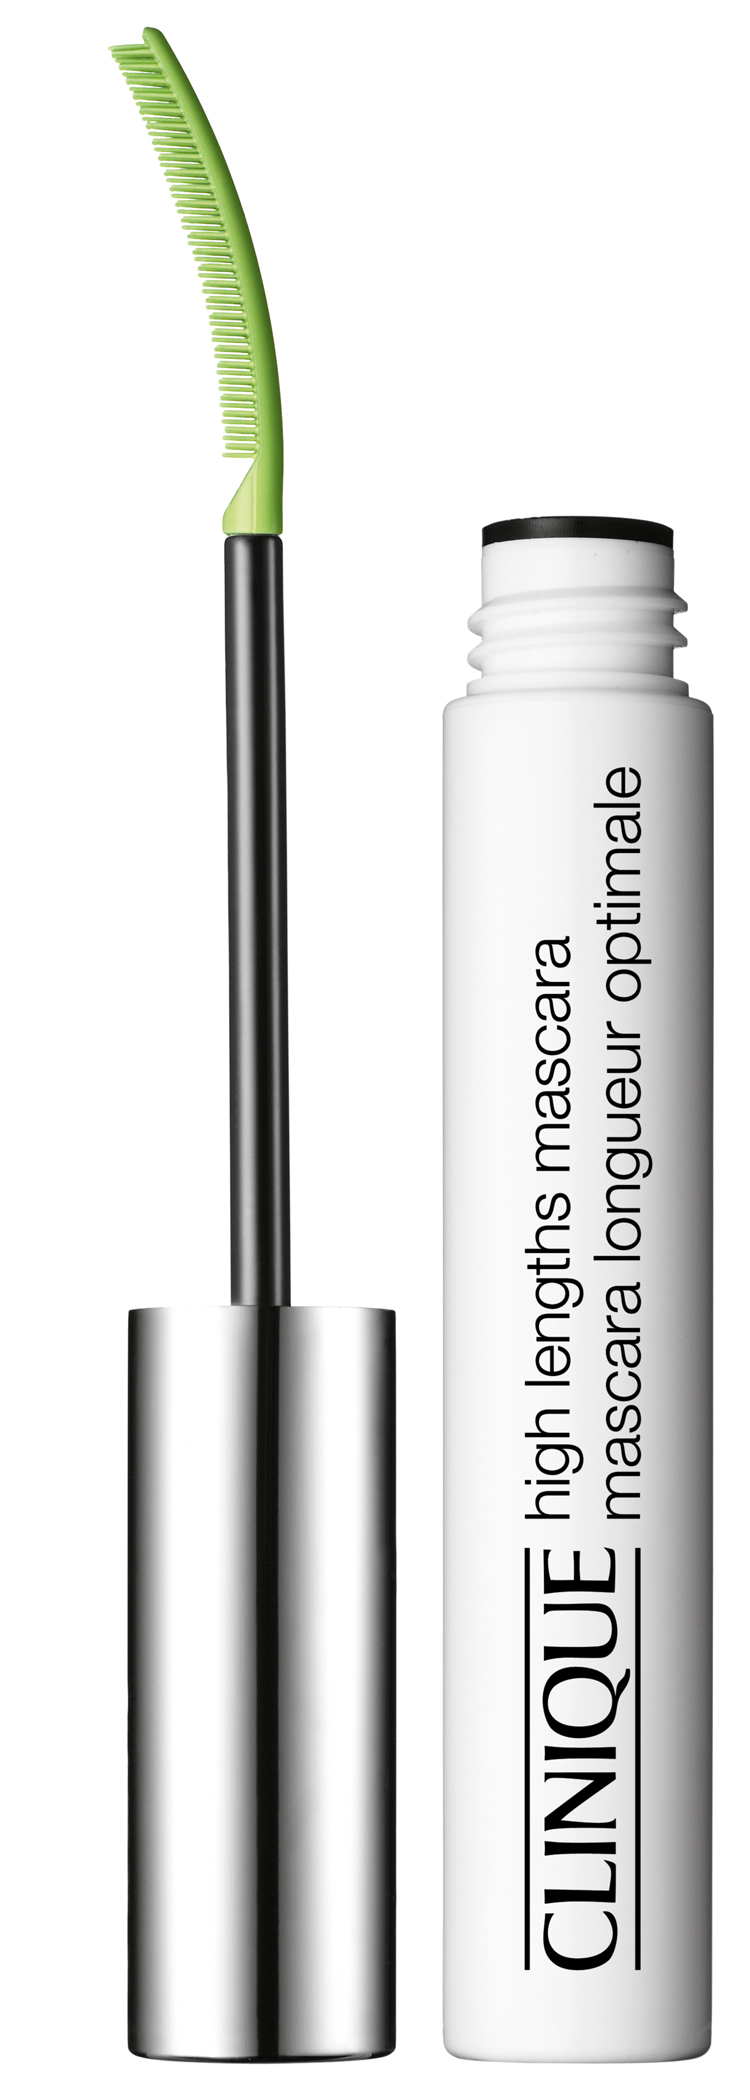 HIGH LENGTHS MASCARA 1.jpg